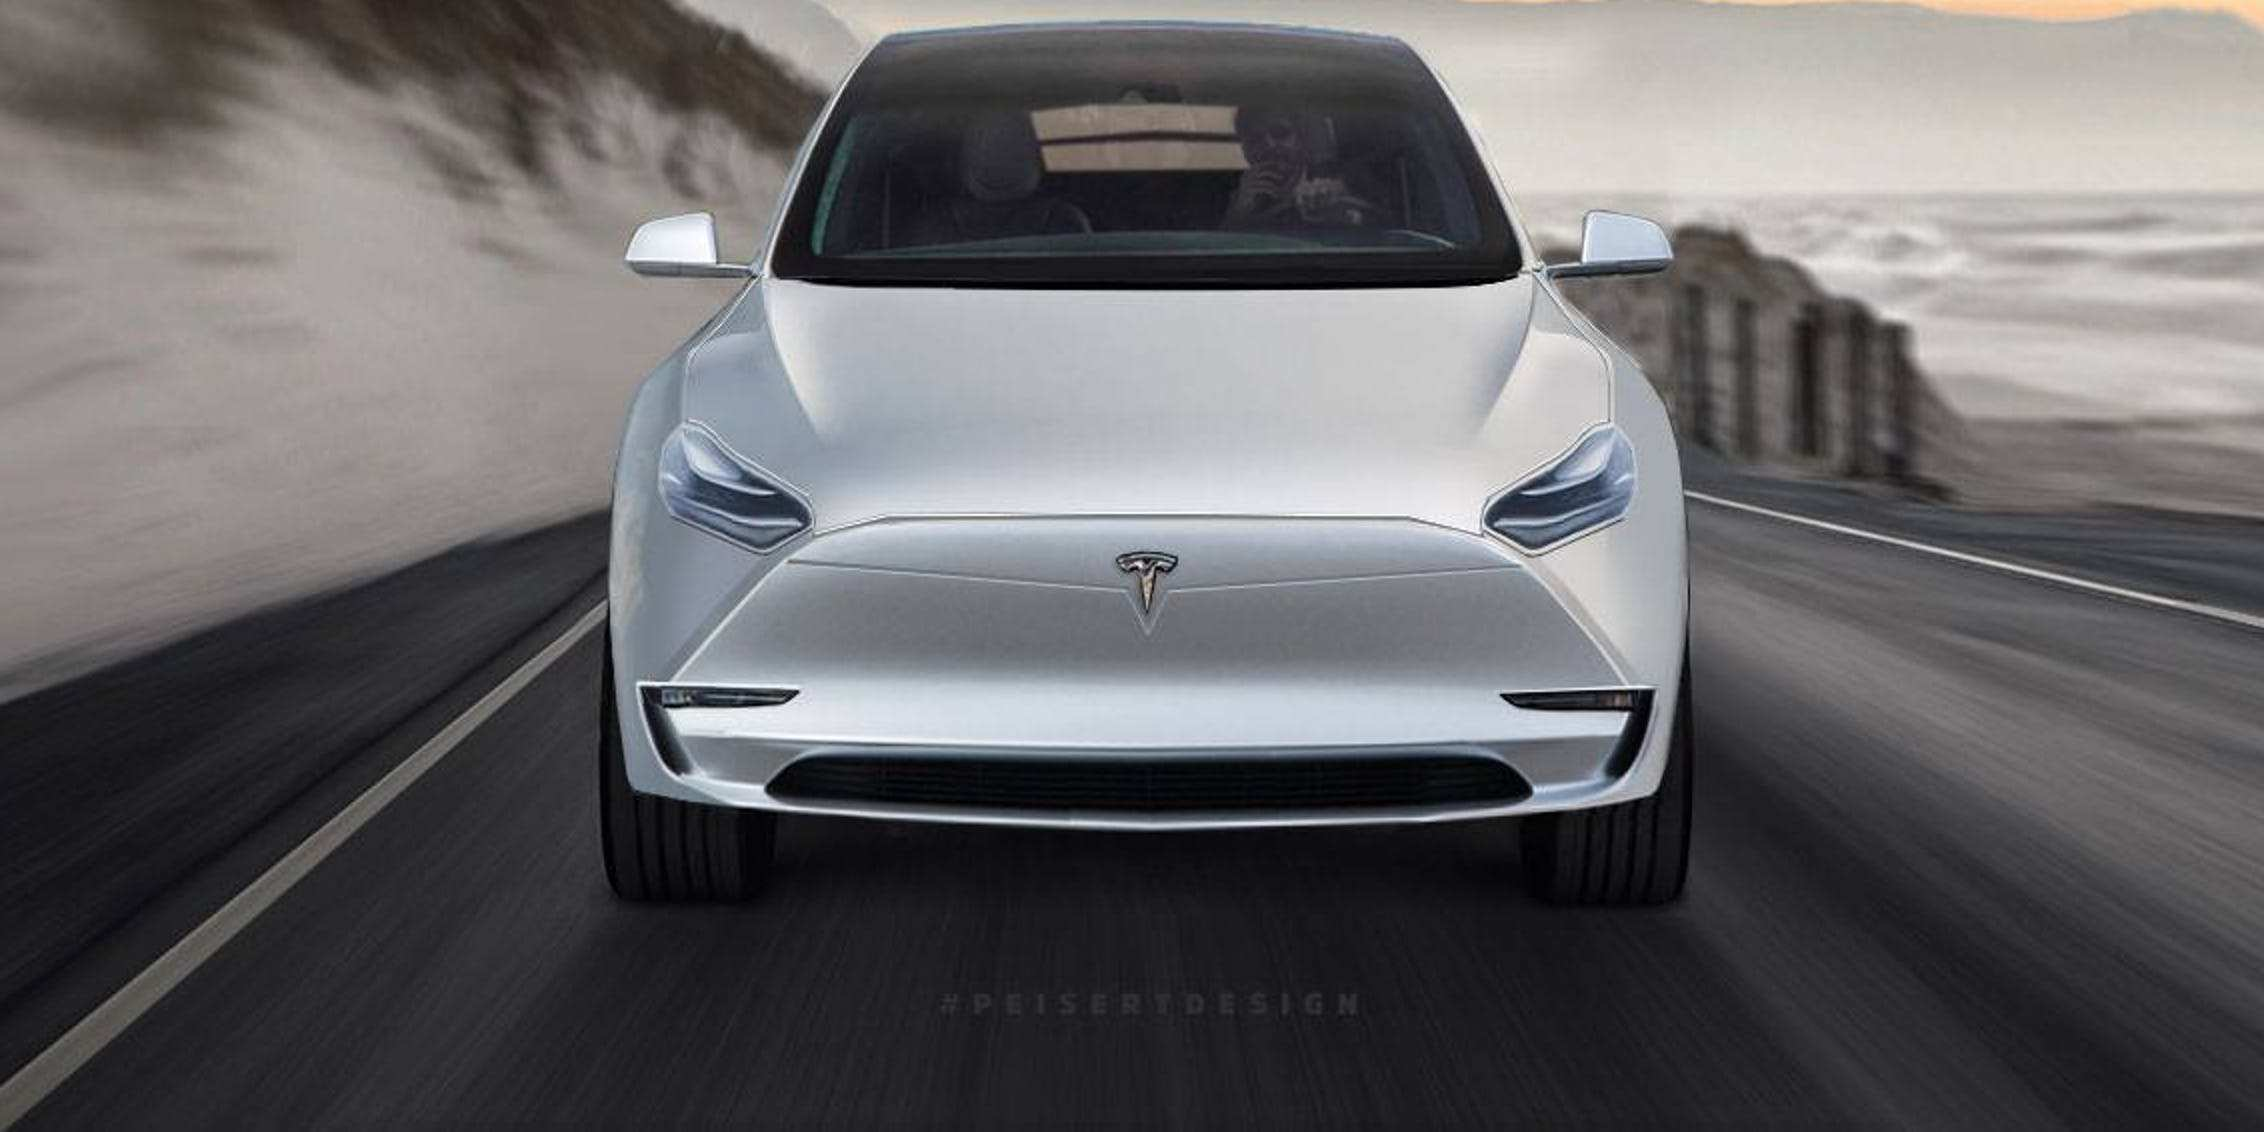 76 All New 2019 Tesla Model Y Rumors with 2019 Tesla Model Y